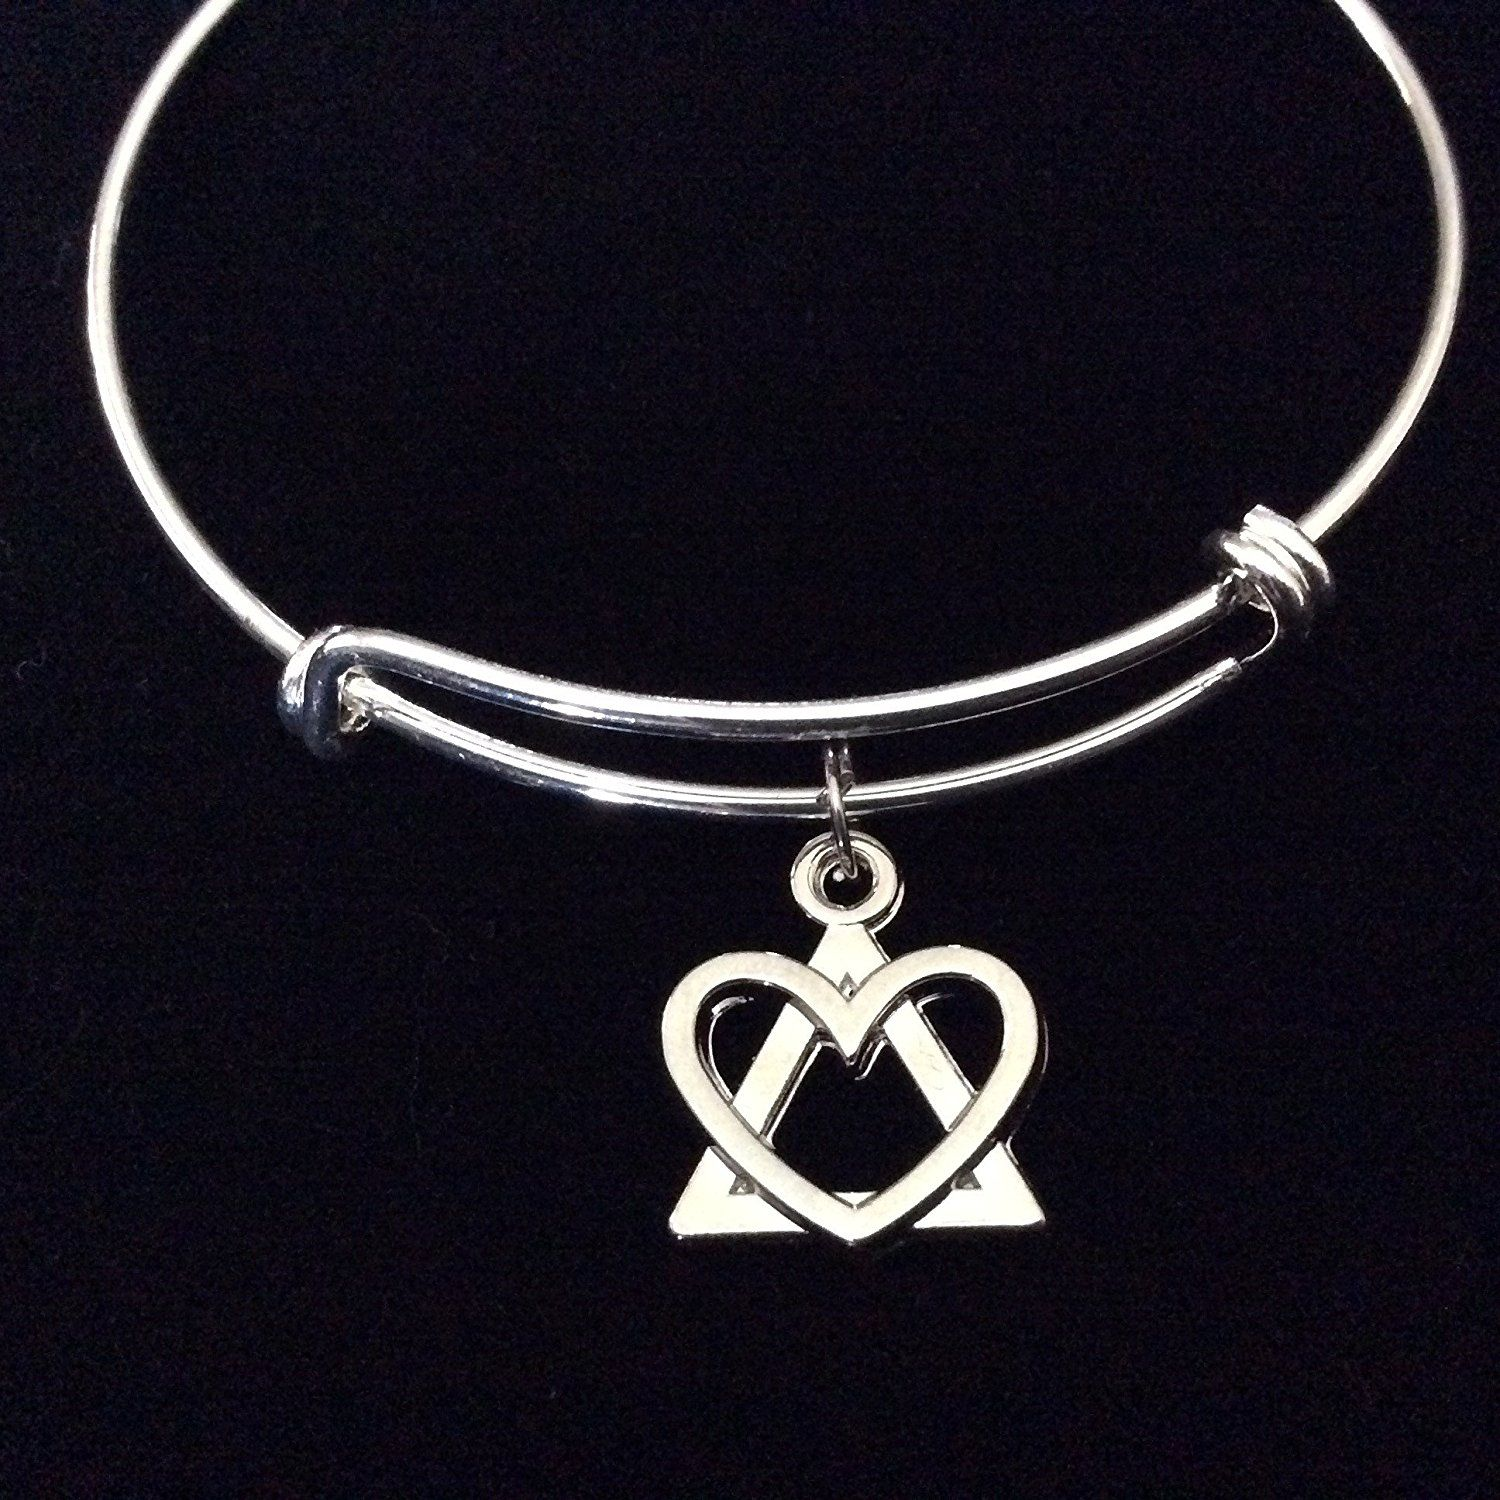 Triangle and heart expandable silver charm bracelet adjustable triangle and heart expandable silver charm bracelet adjustable wire bangle adoption symbol for more buycottarizona Image collections